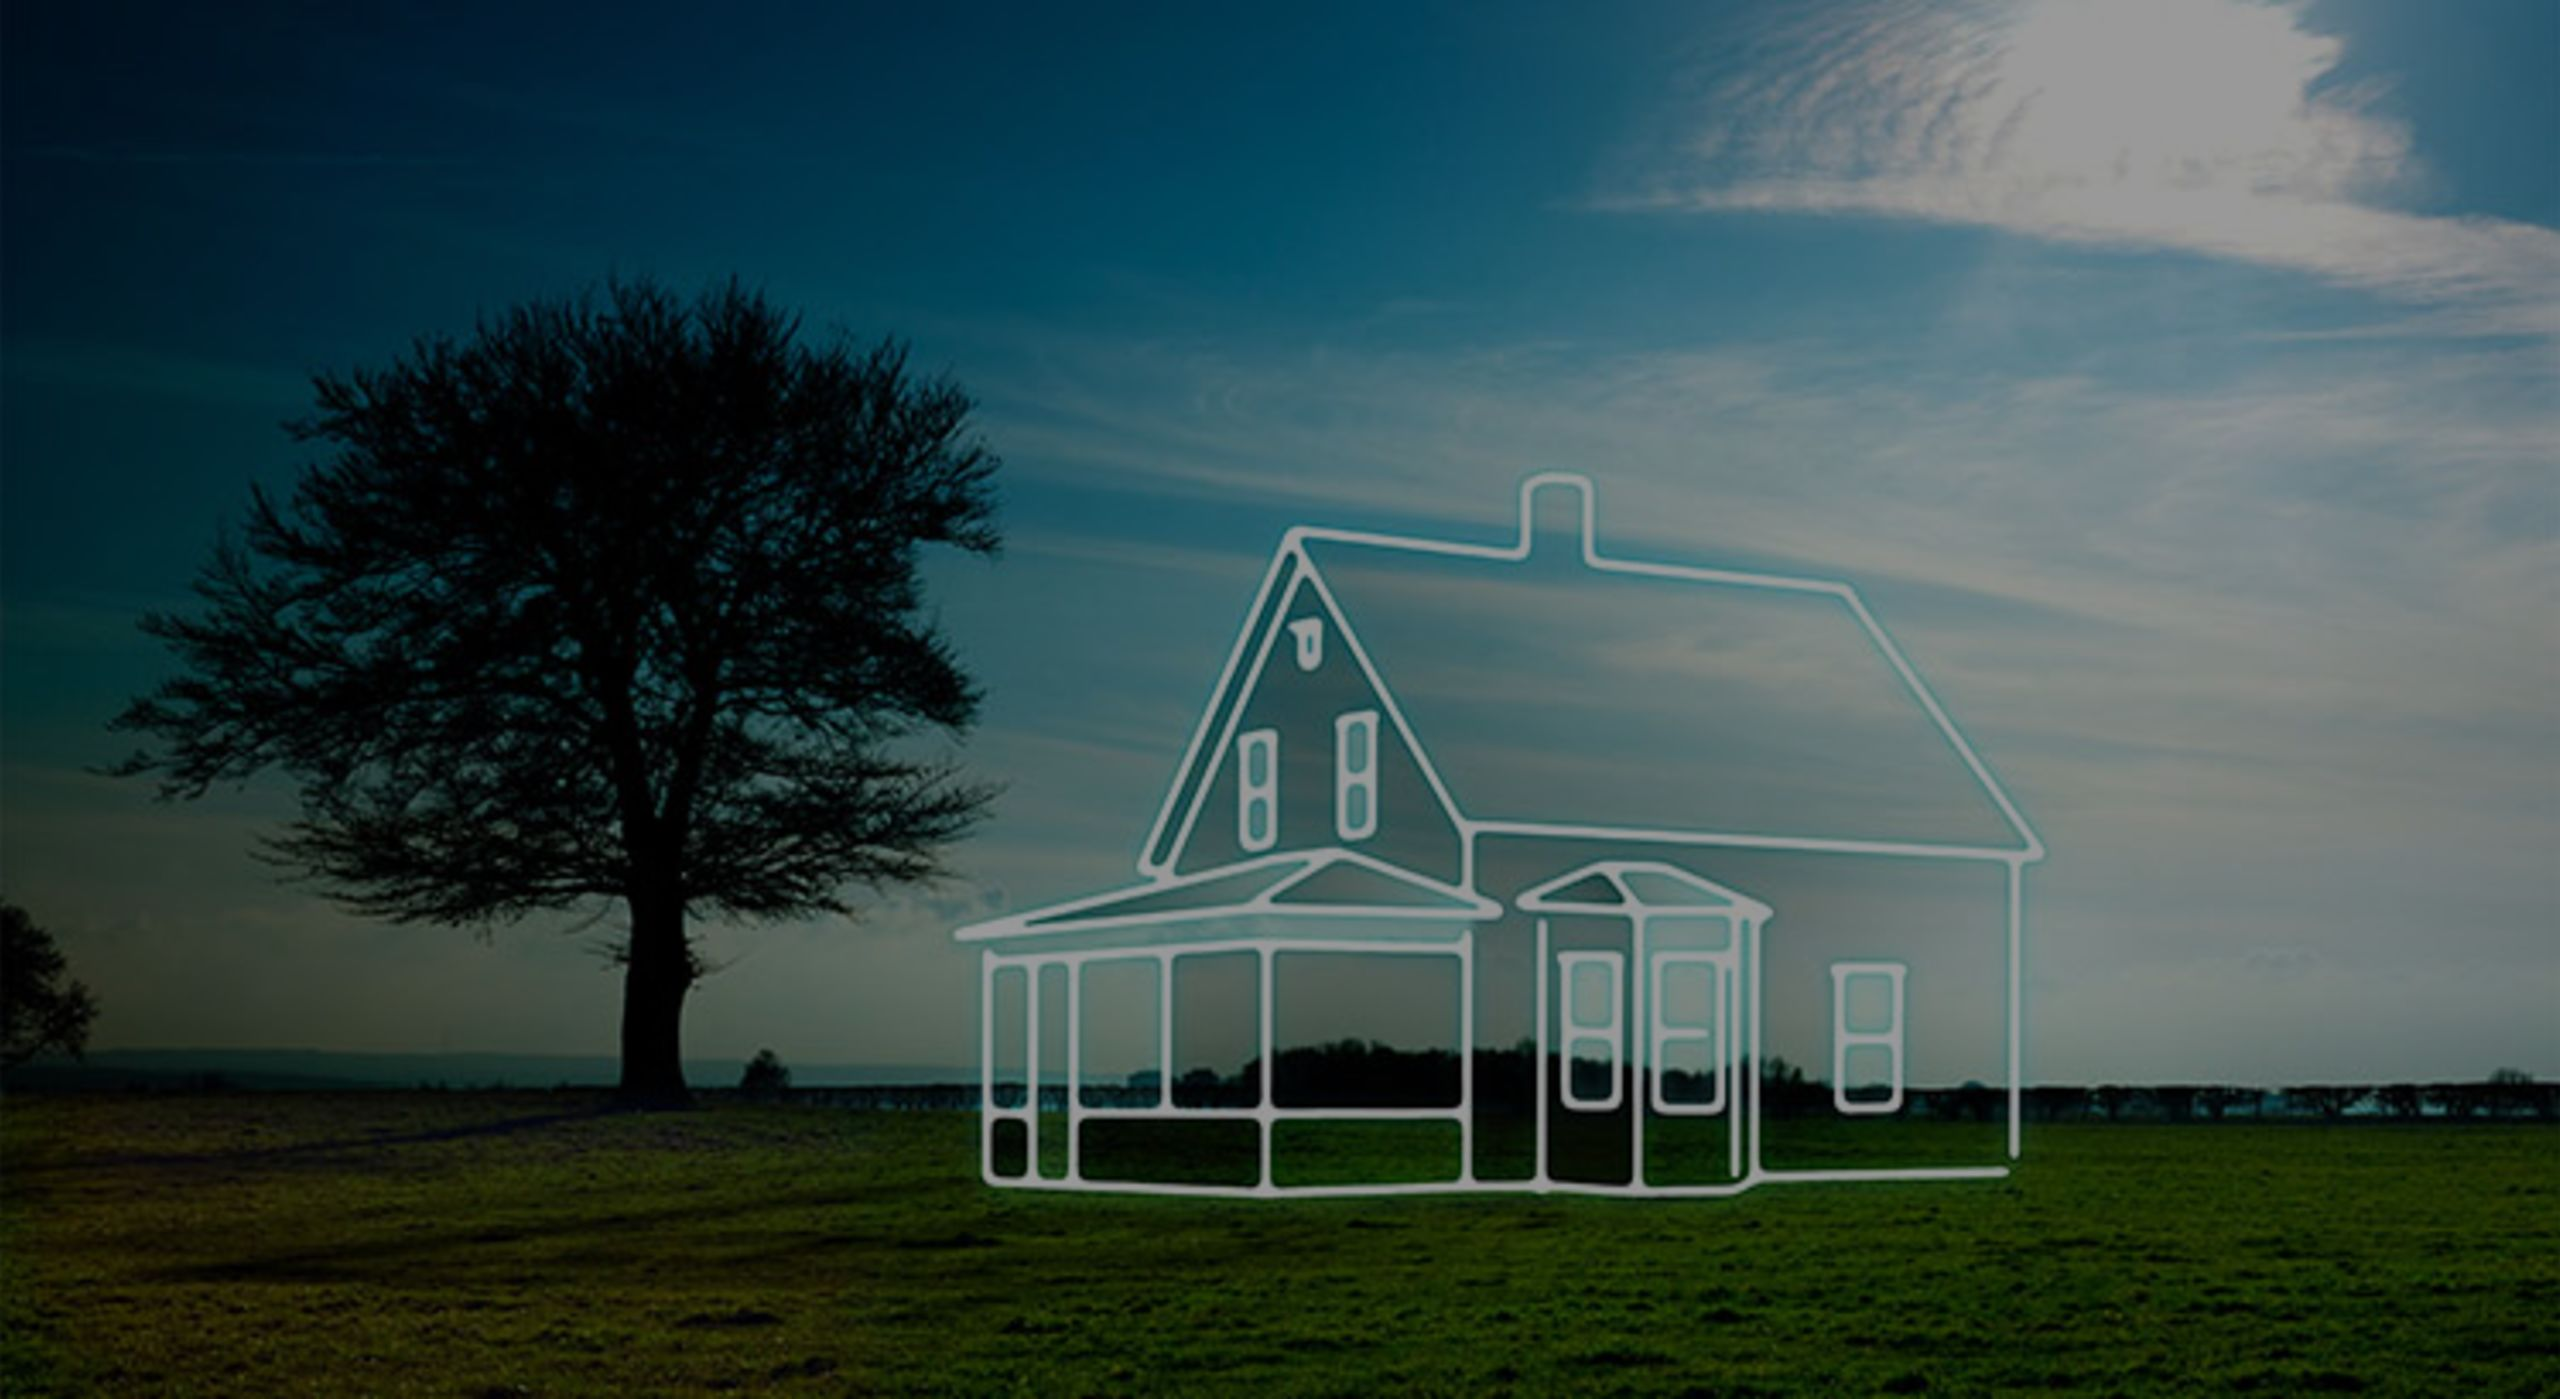 Daydreaming About Your Perfect Home? Know What You WANT vs. What You NEED